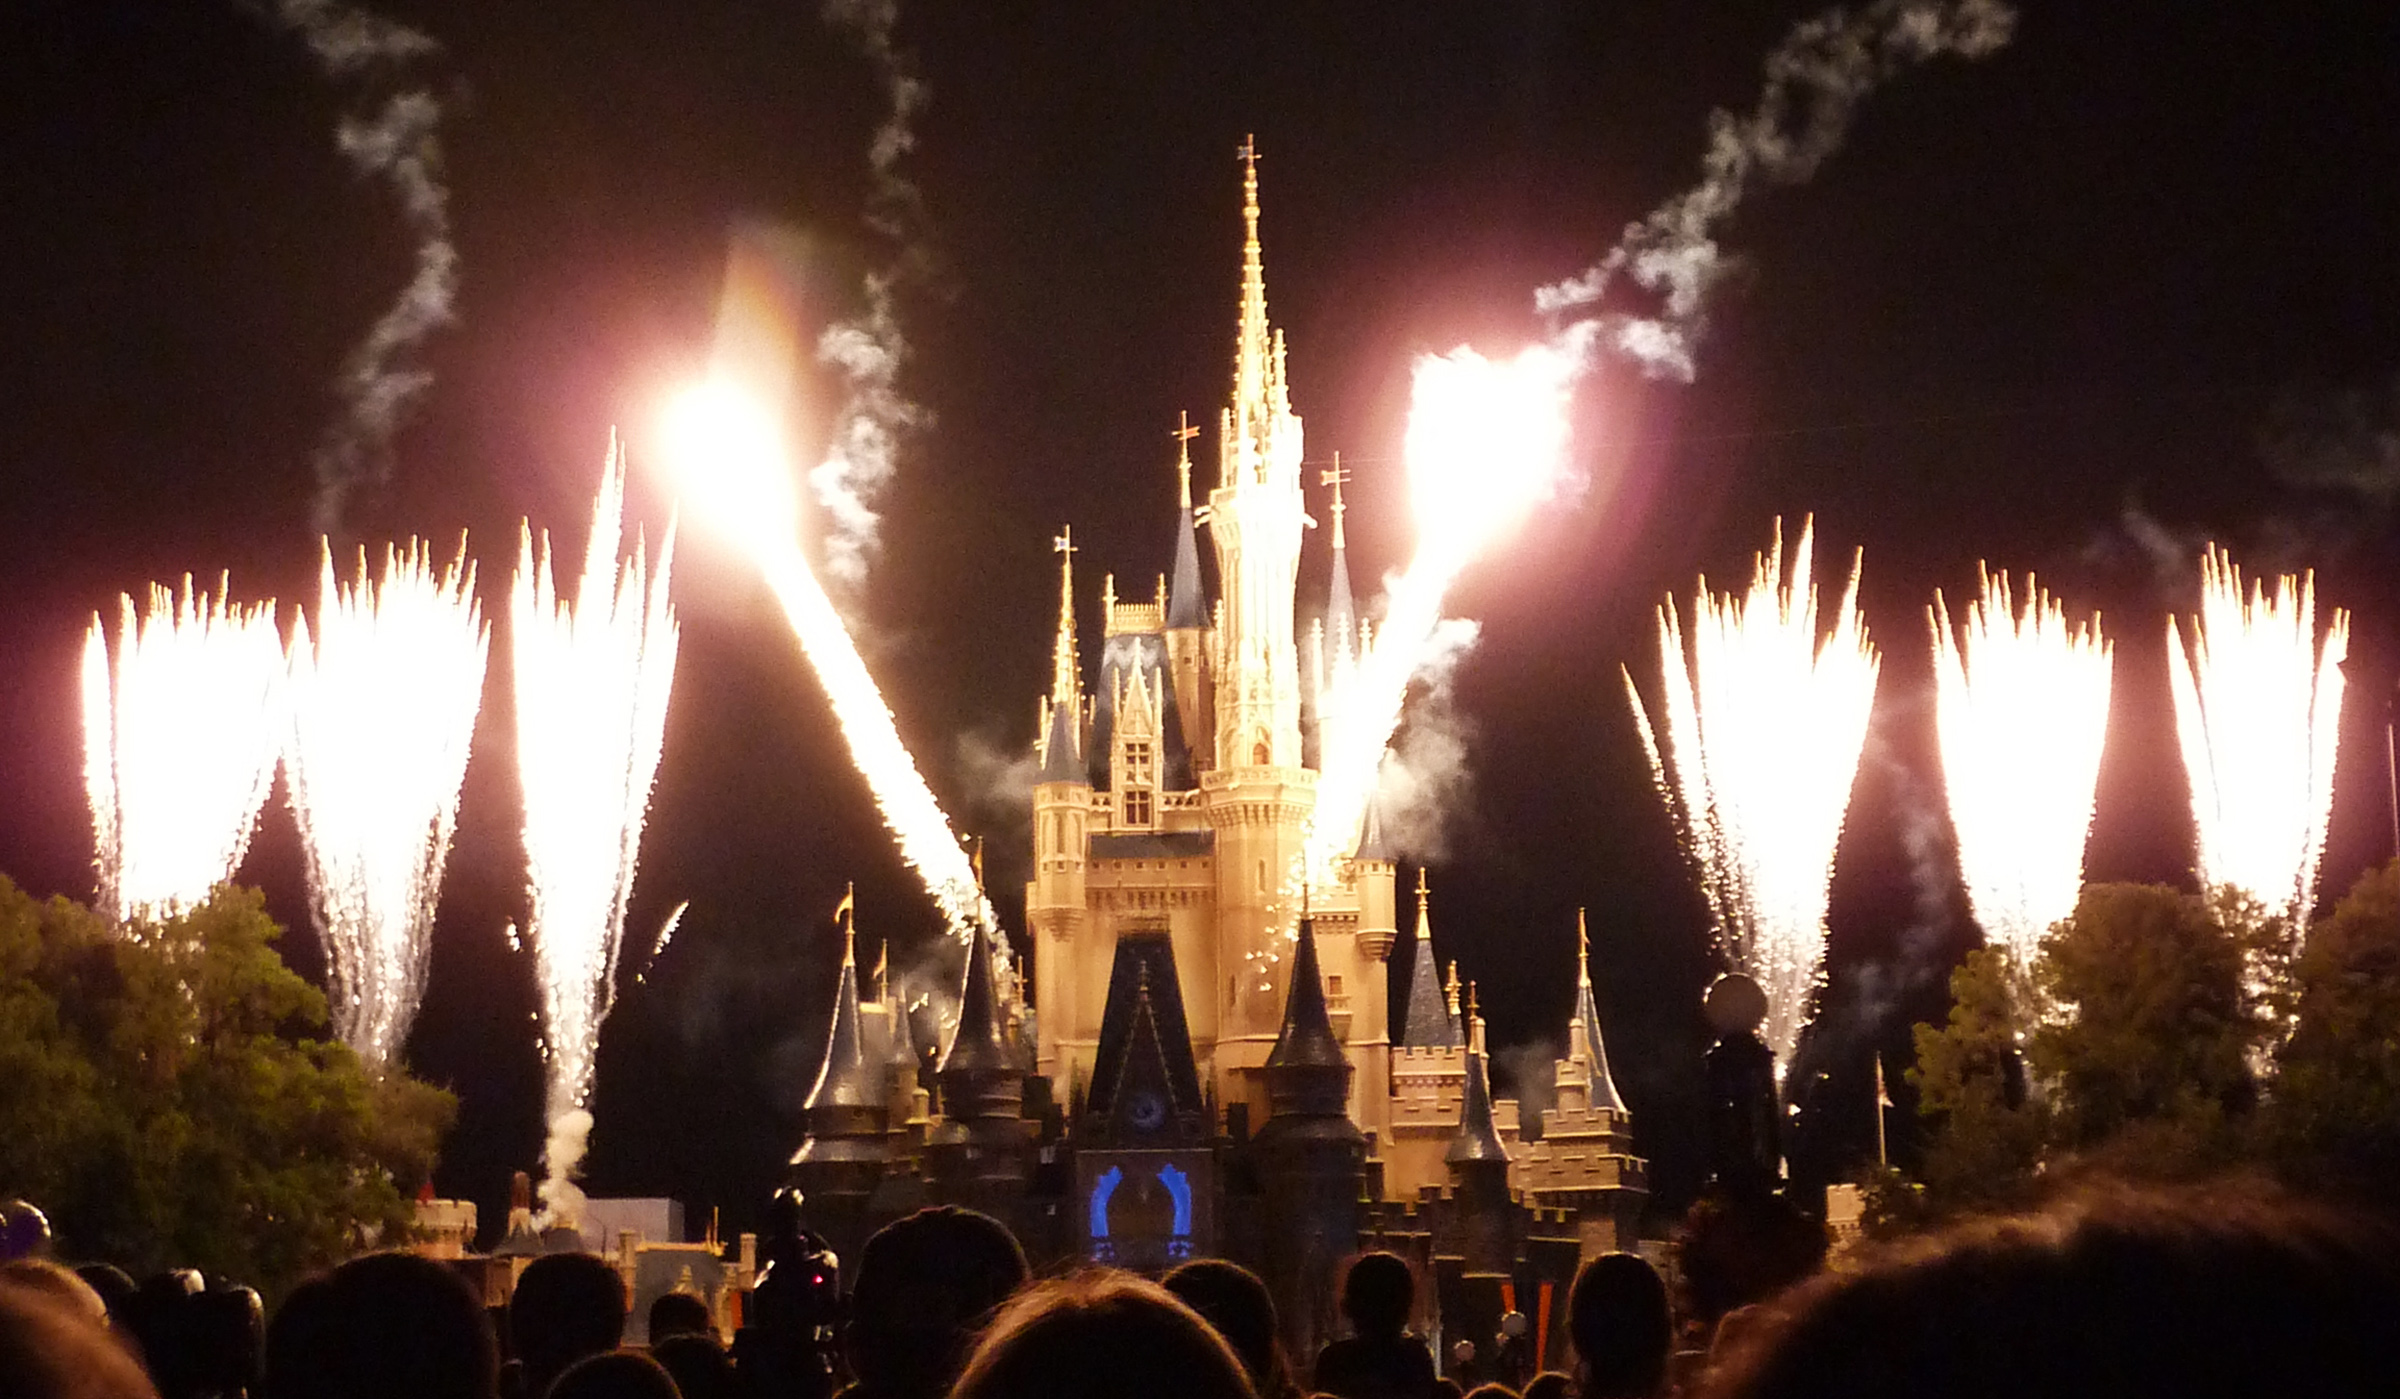 Fireworks at the Magic Kingdom in Walt Disney World Orlando, Florida